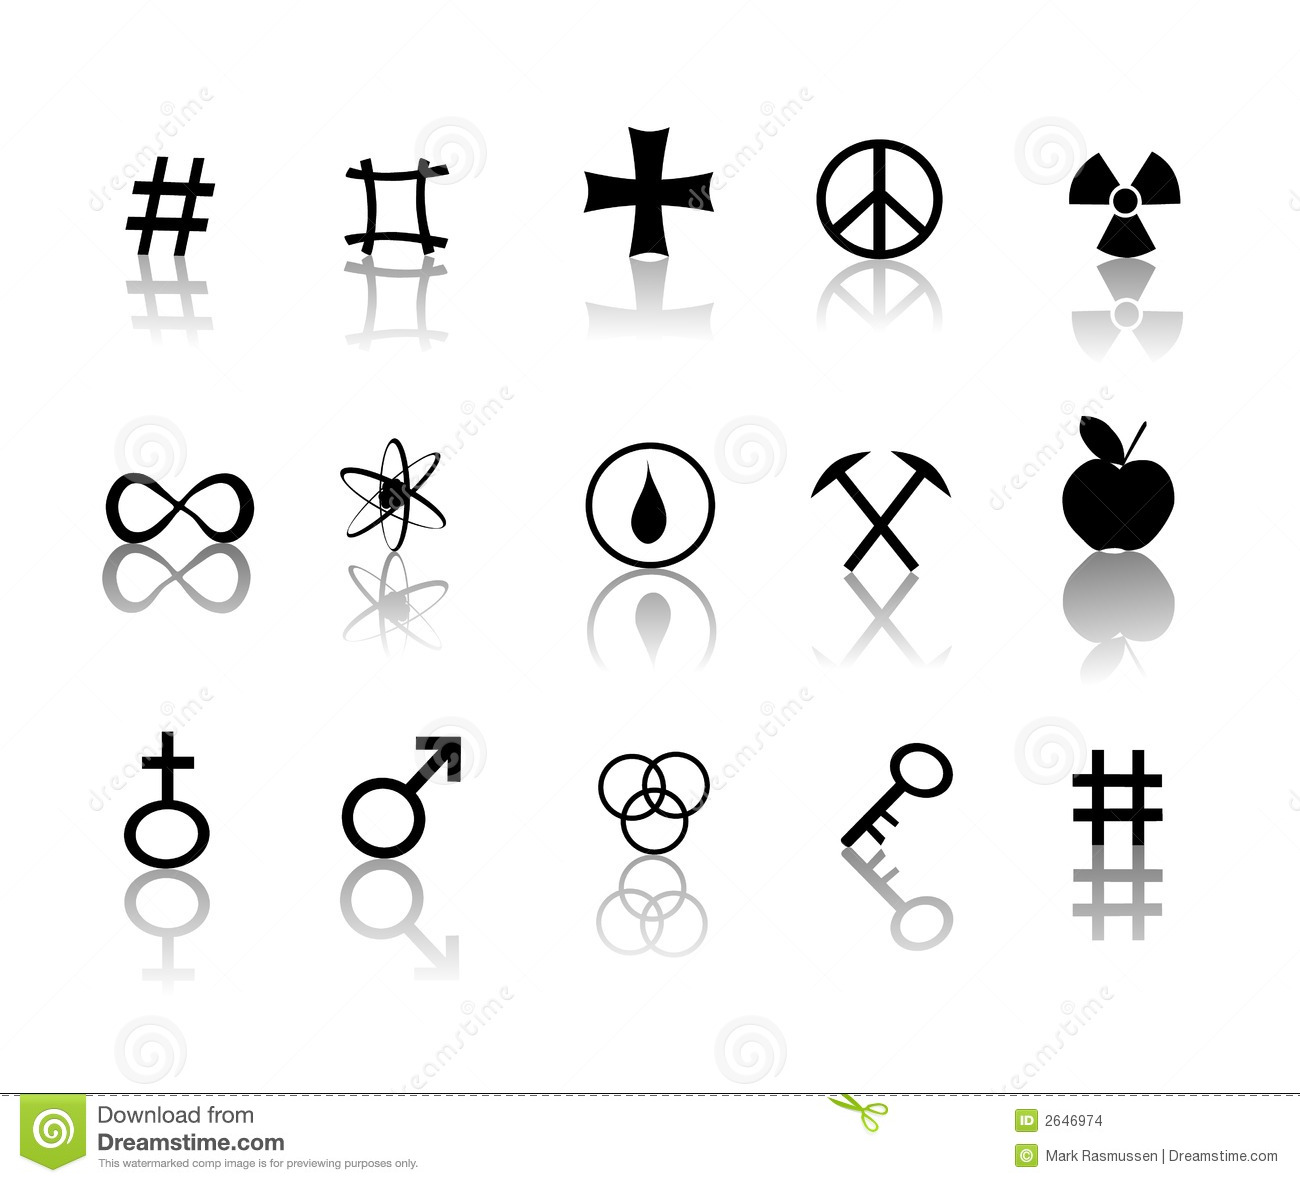 Black and white signs and symbols icon set Warning Signs And Symbols Black And White